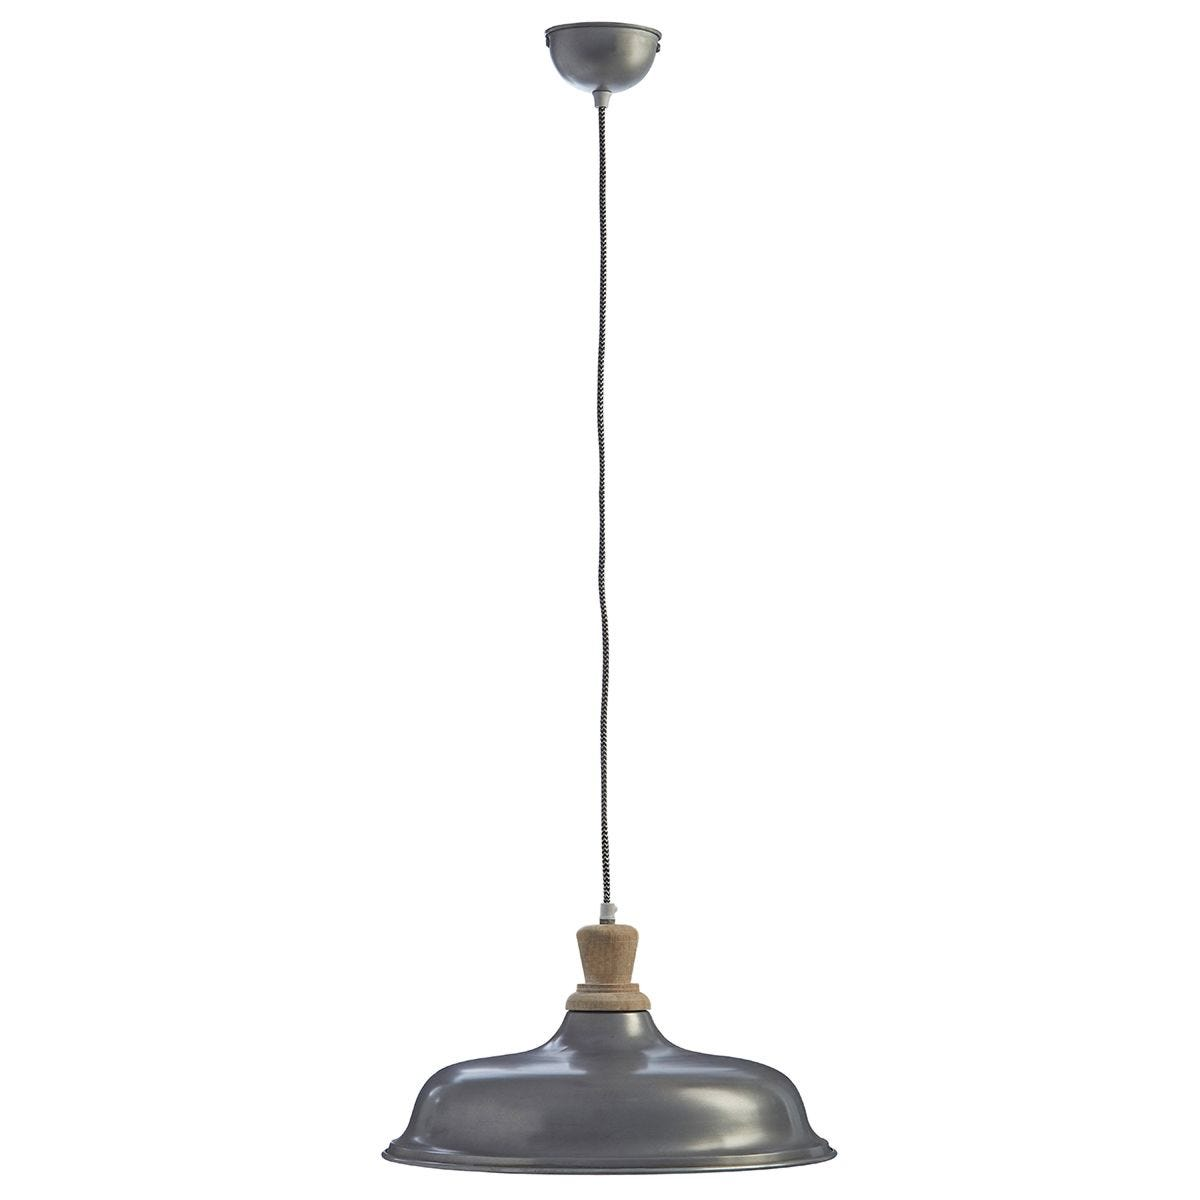 Premier Housewares Oslo Small Pendant Light in Iron/Wood - Zinc Finish